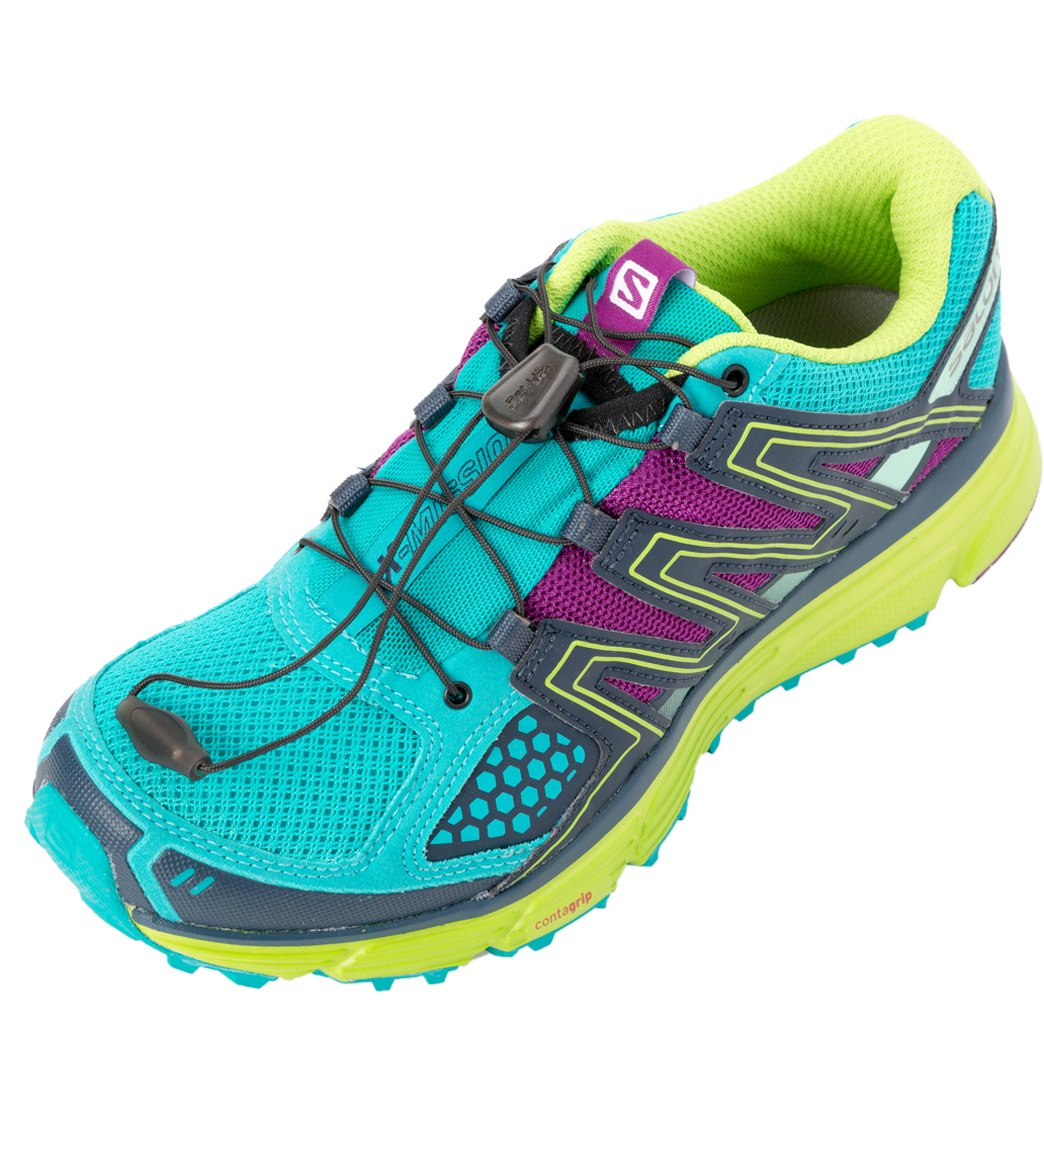 a5398dc6e Salomon Women's X-Mission 3 Running Shoes